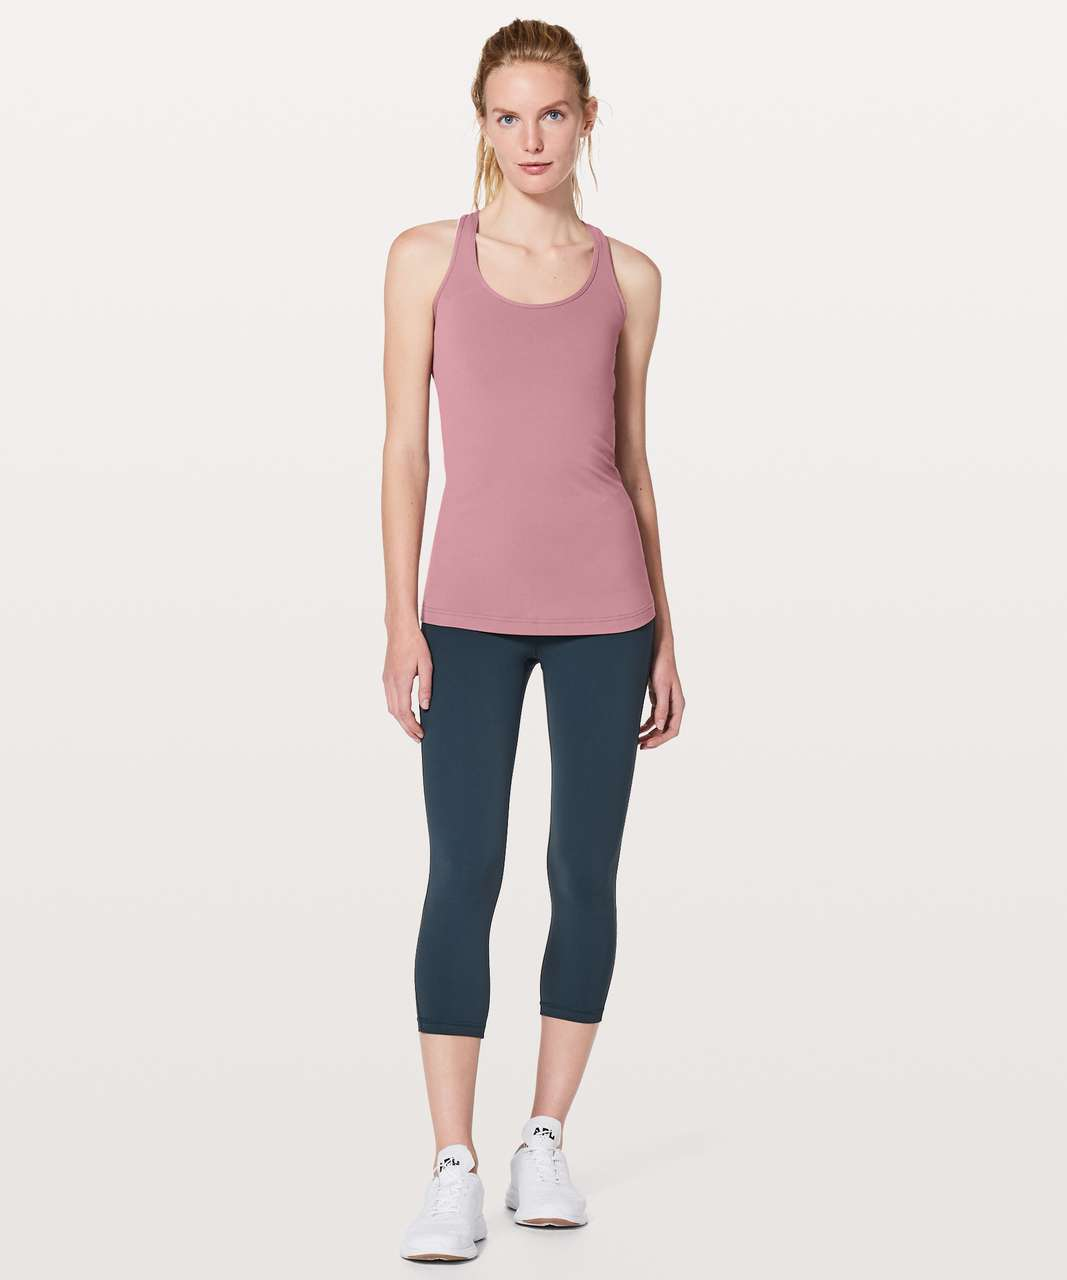 Lululemon Cool Racerback - Figue